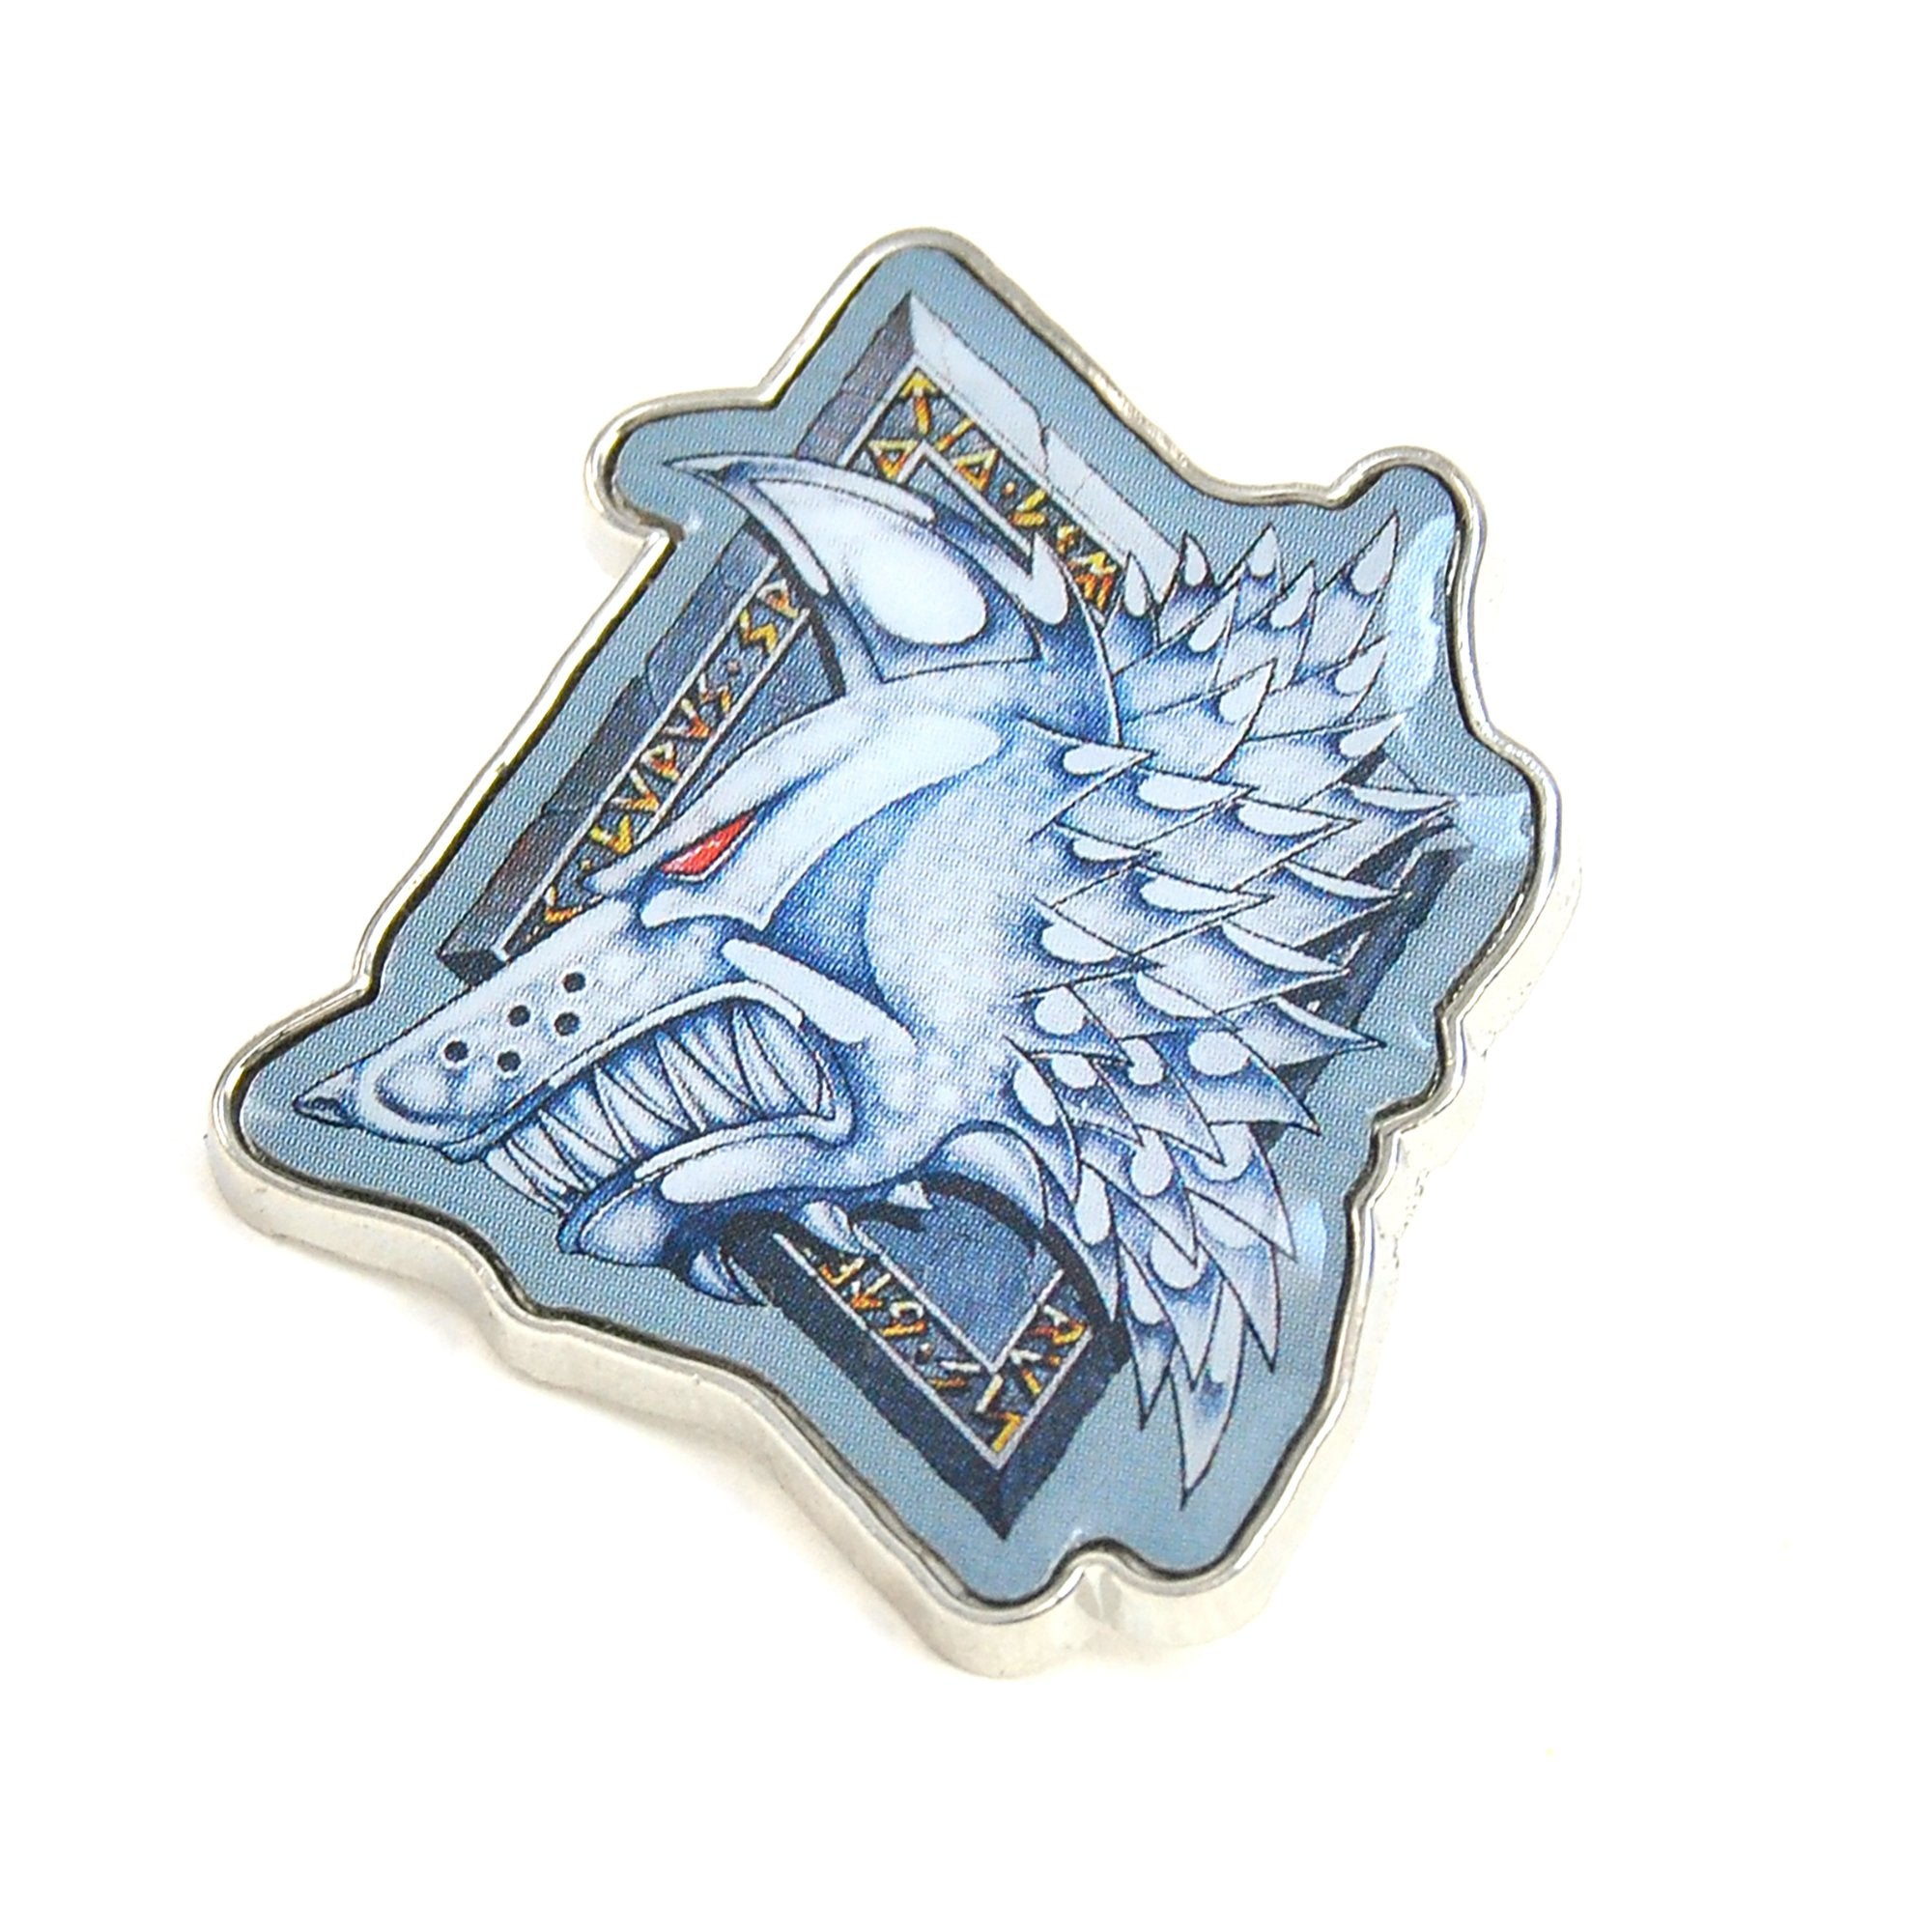 Warhammer 40,000 Pin Badge - Space Wolves - Half Moon Bay US